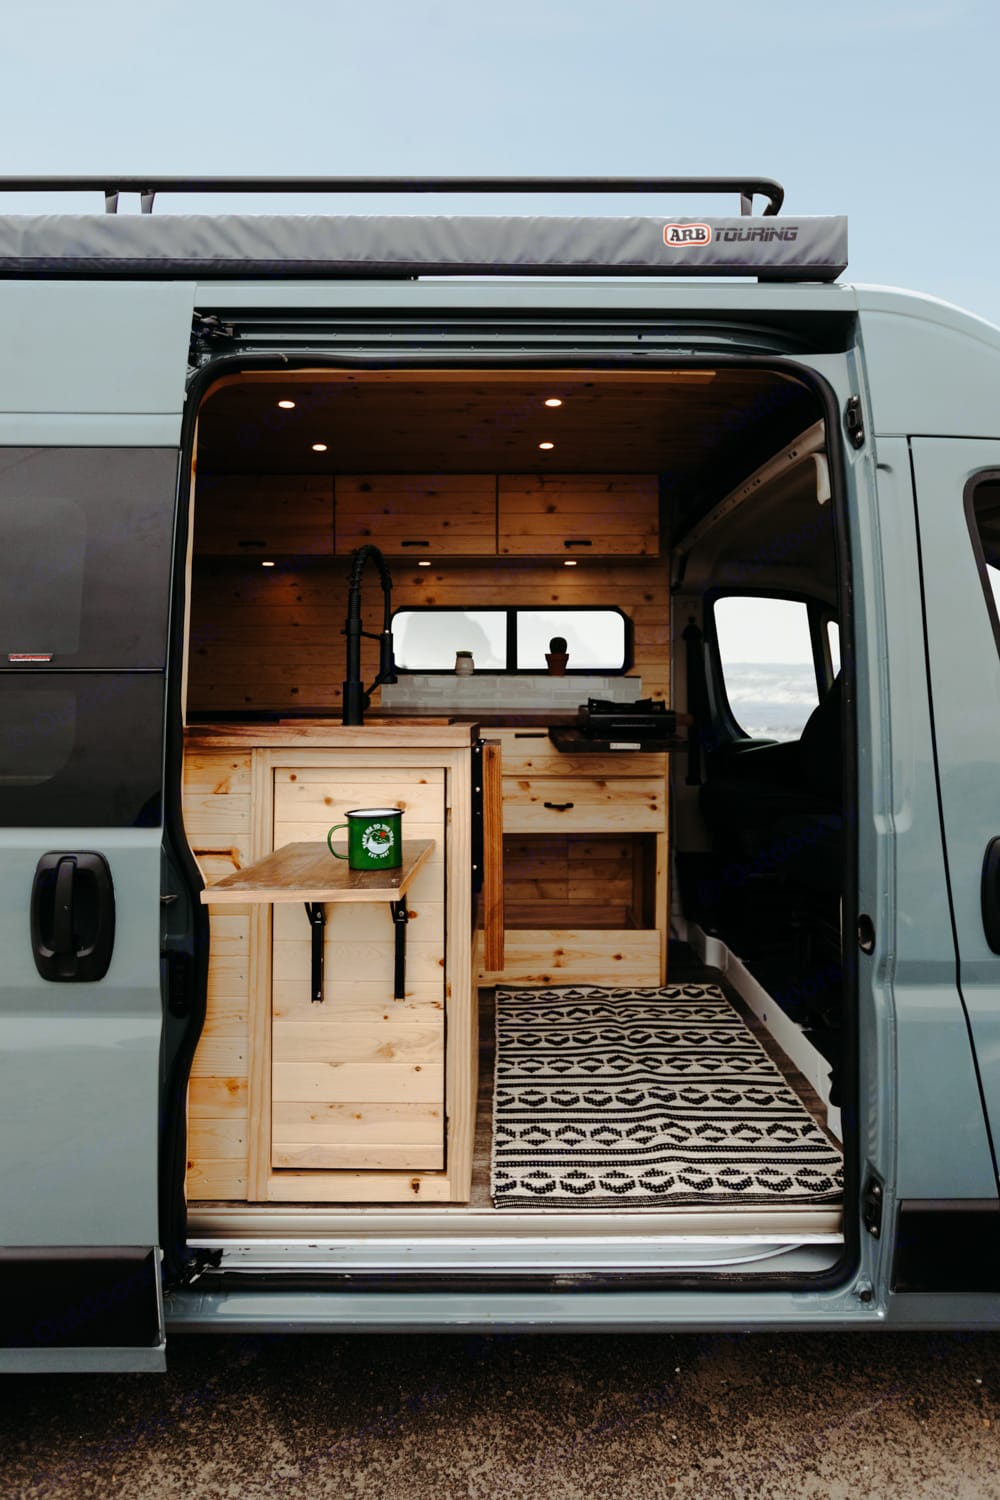 The beautifully converted Hydeout has everything you need for a comfortable and relaxing camping getaway.. Ram ProMaster 2019